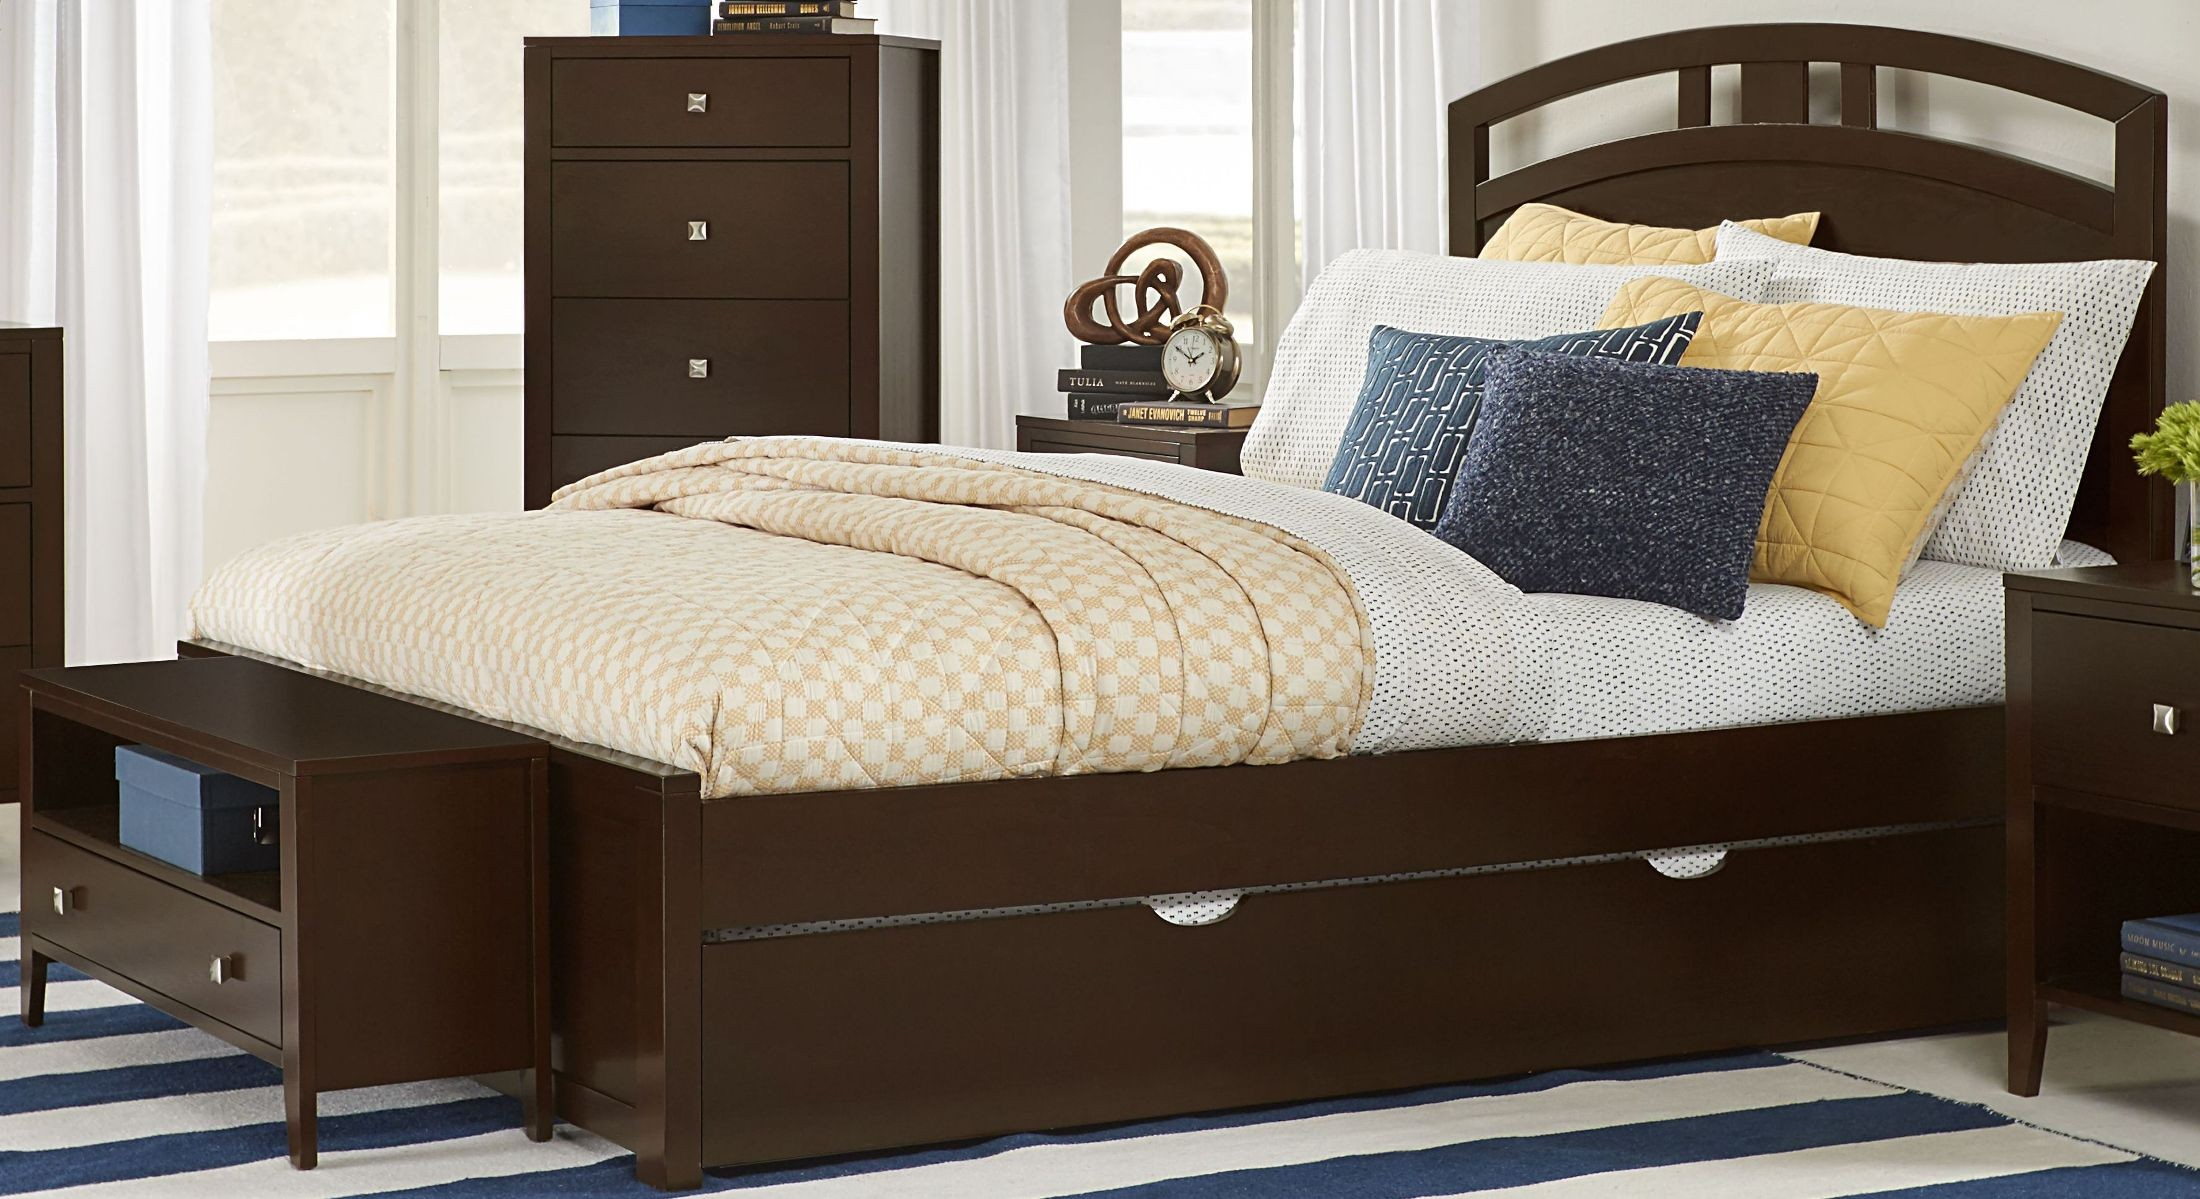 Pulse Chocolate Queen Arch Panel Bed With Trundle 32023nt